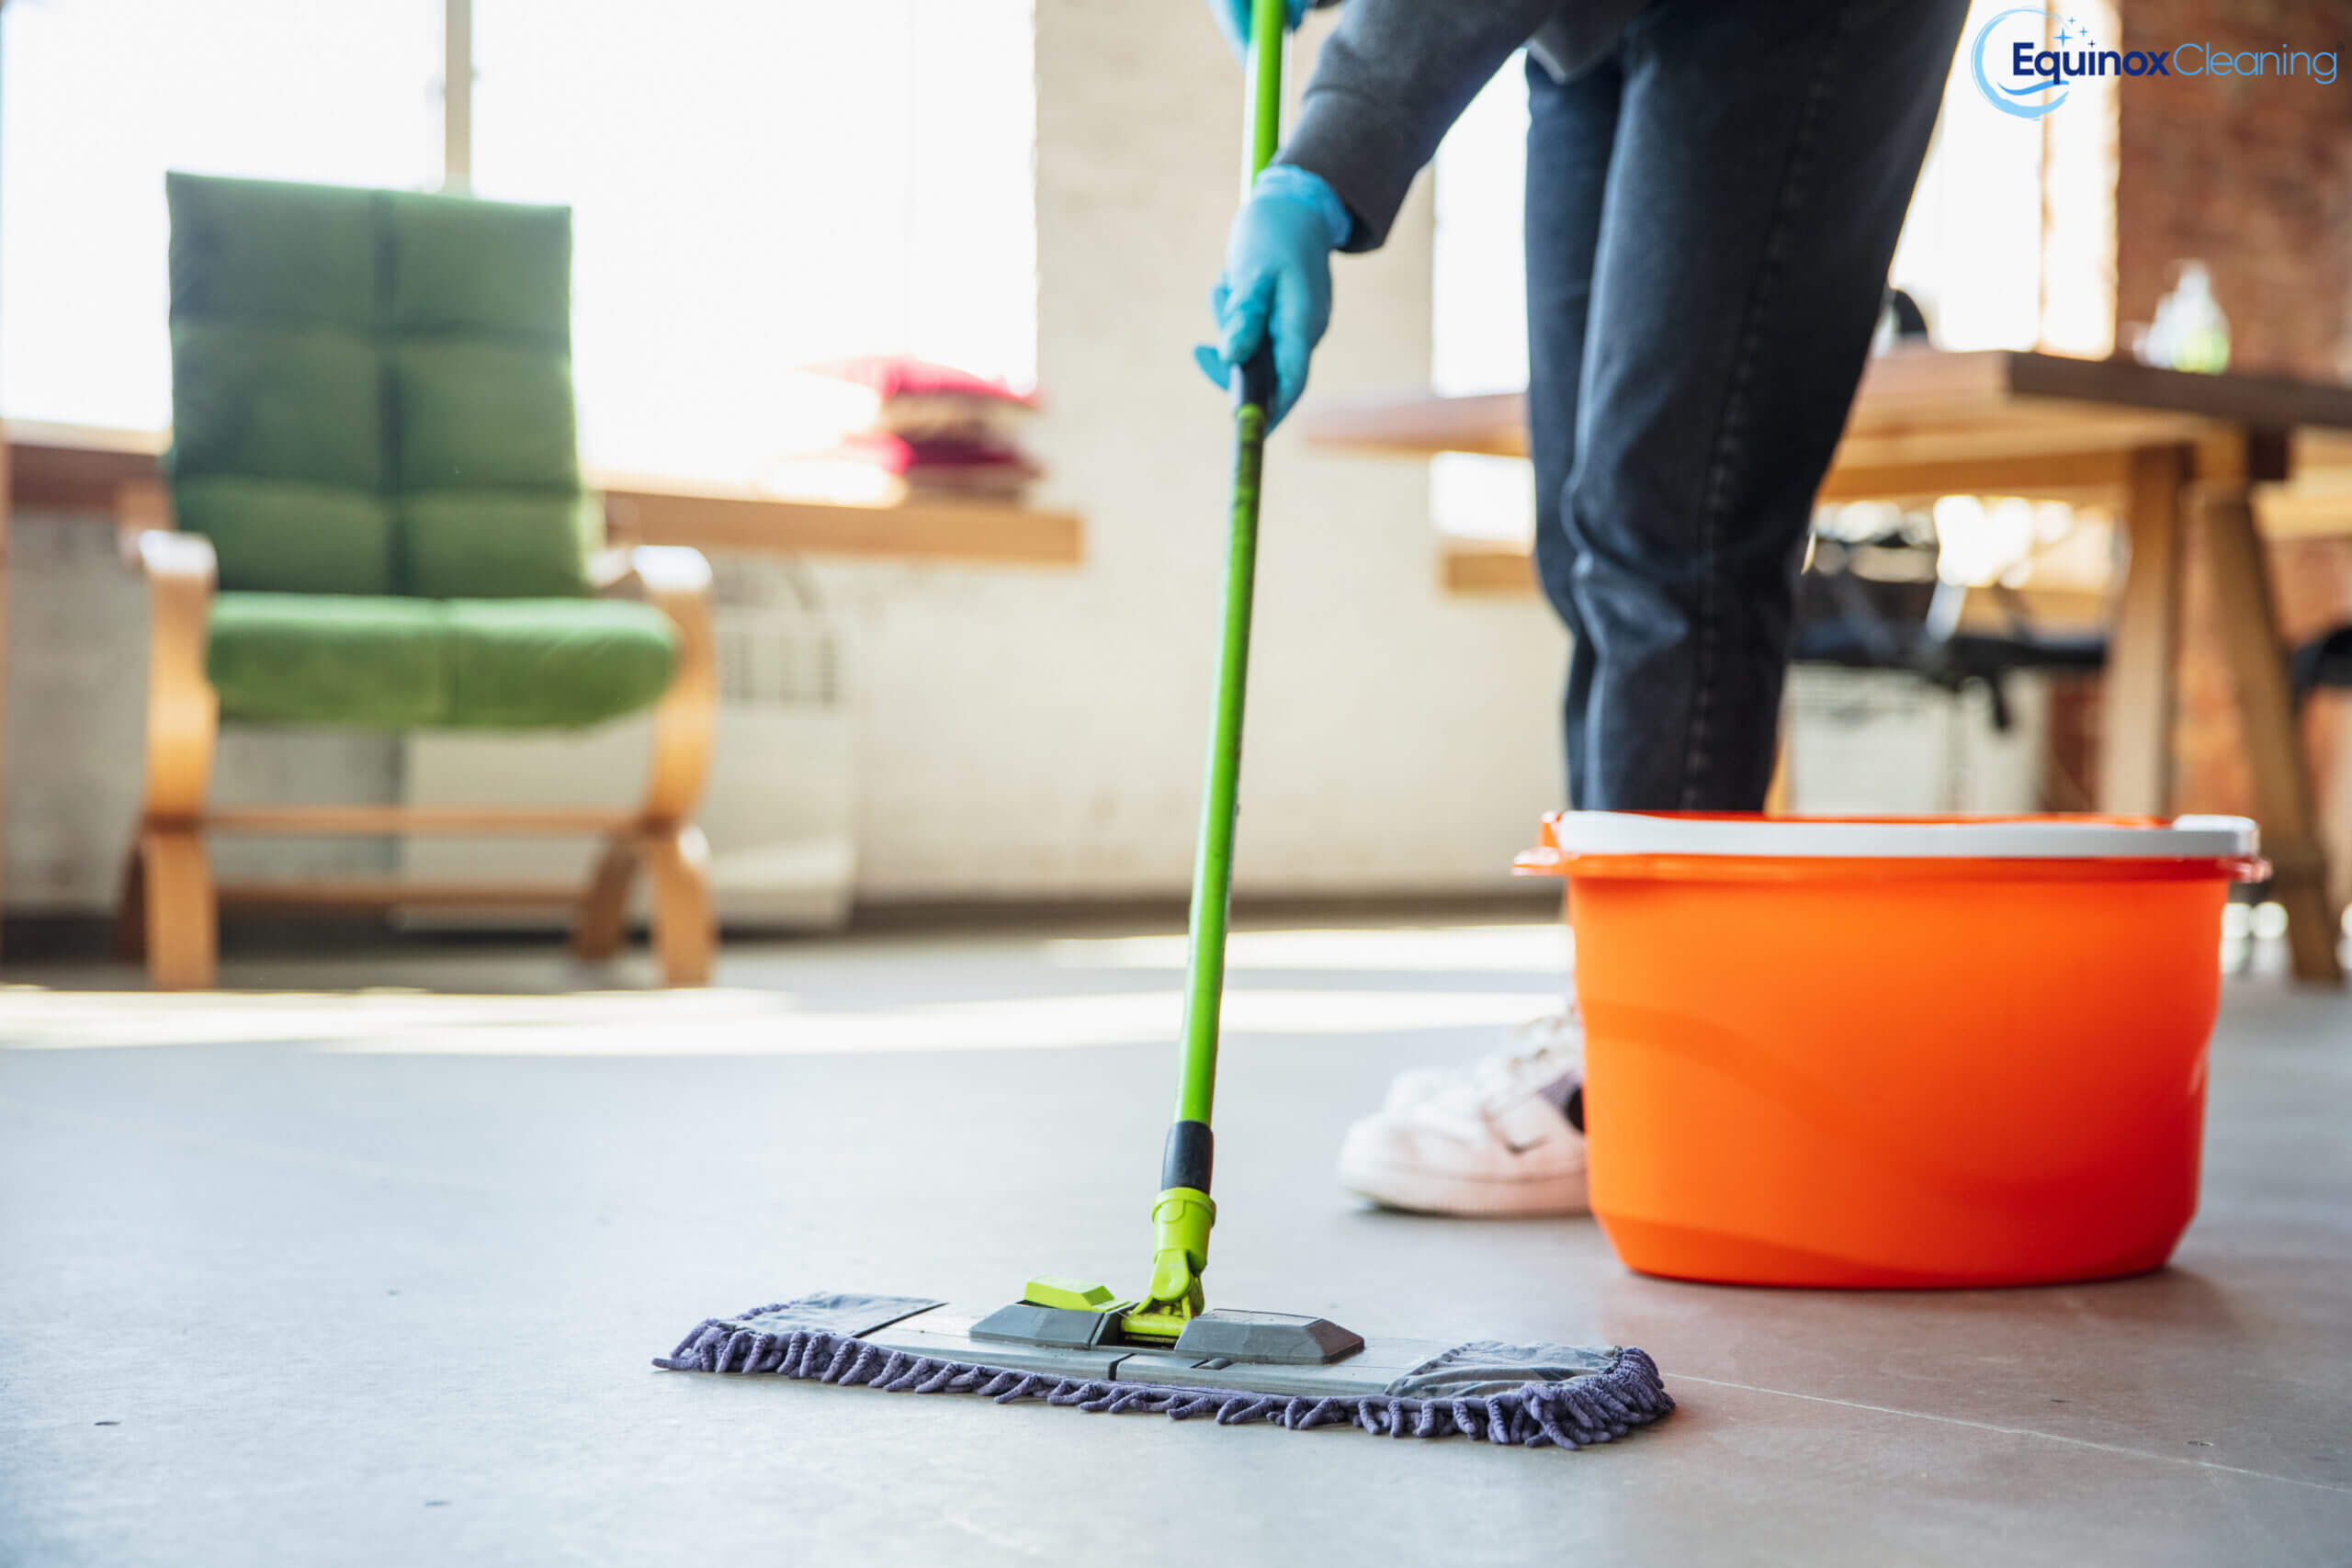 Equinox cleaning | Commercial Cleaning